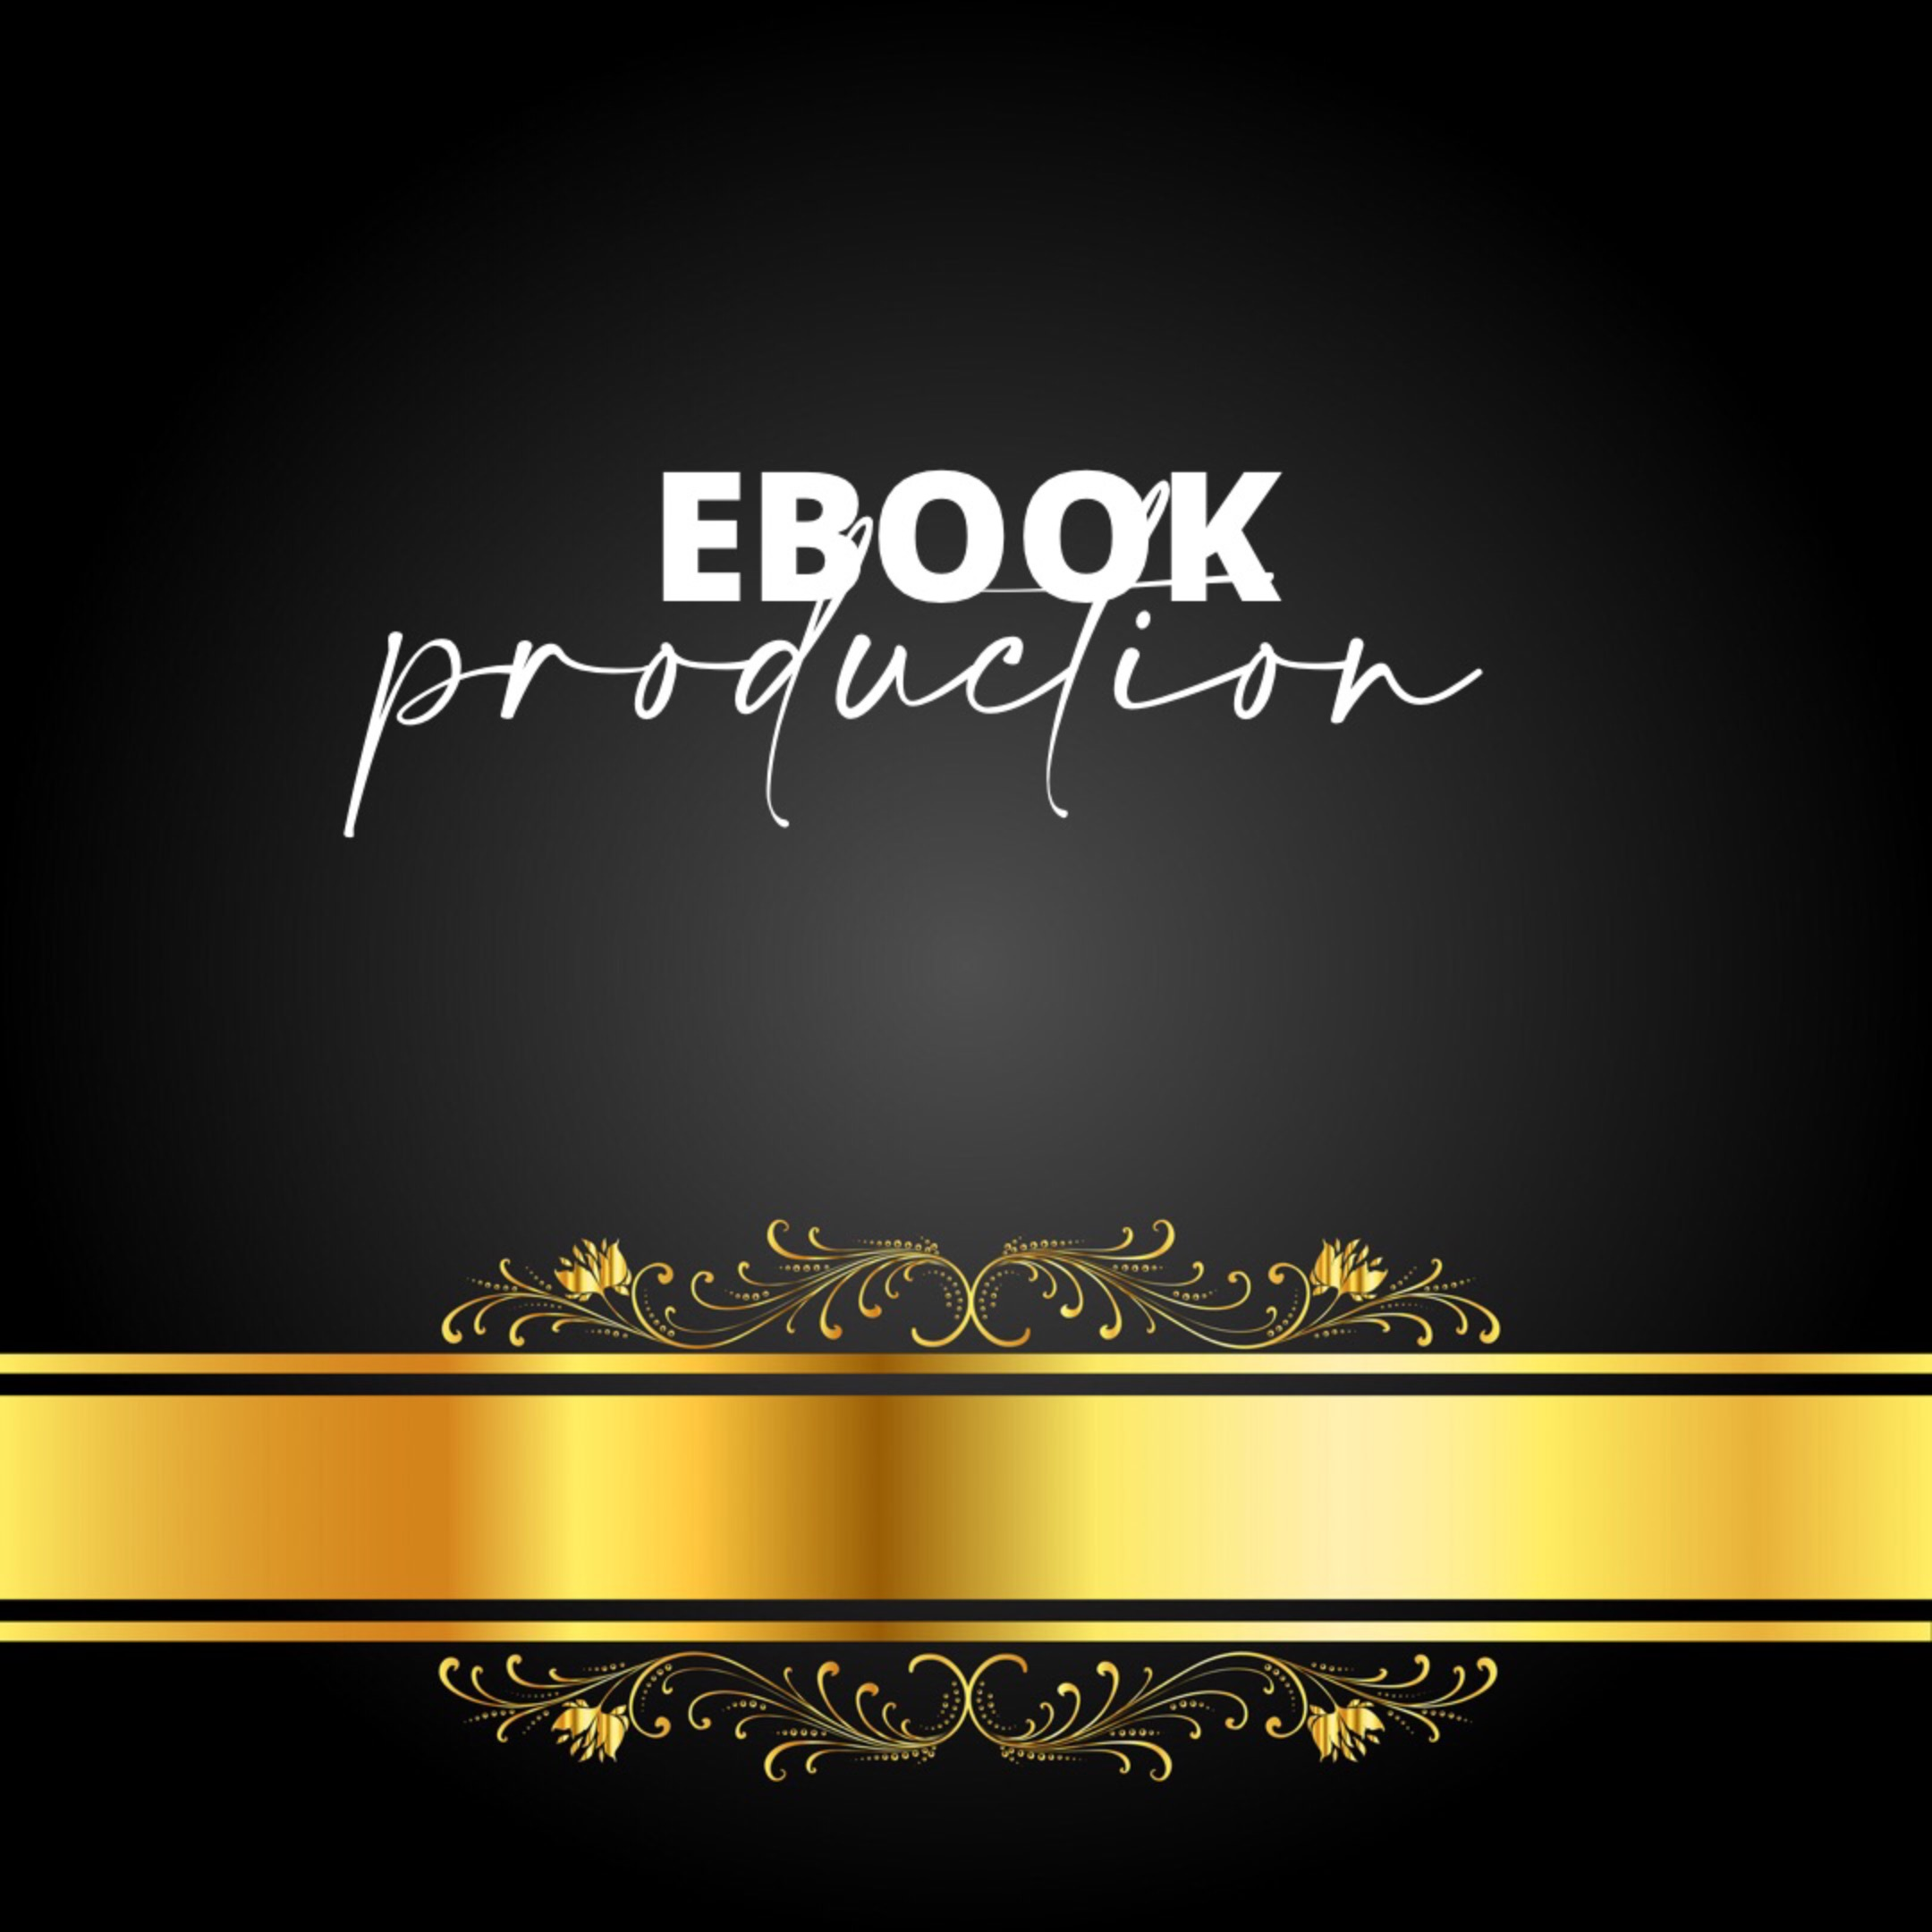 eBook | Production + Publishing